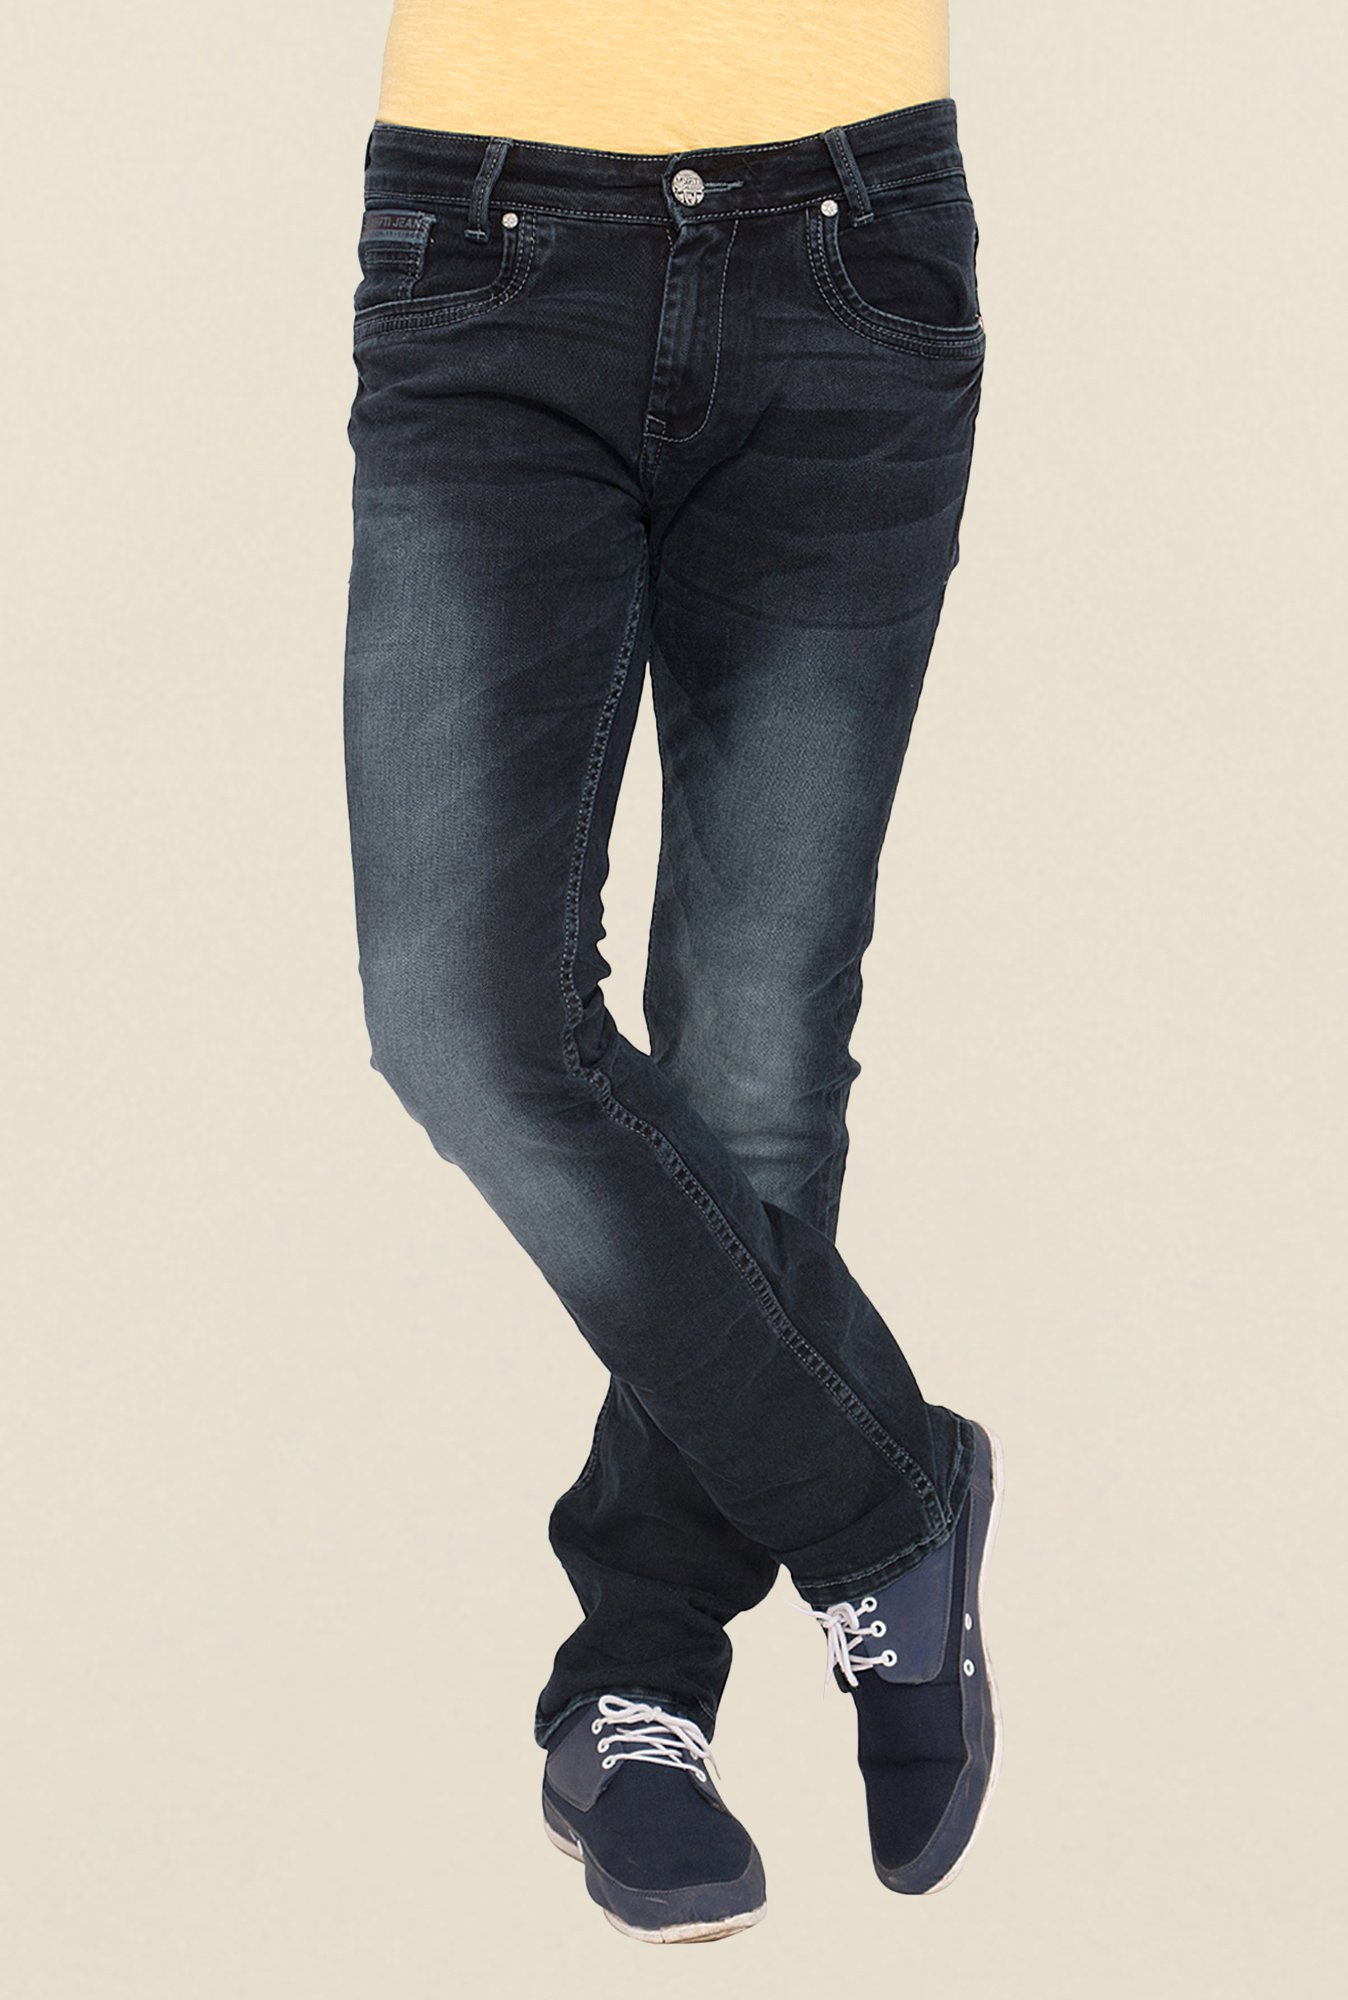 Mufti Black Straight Fit Jeans